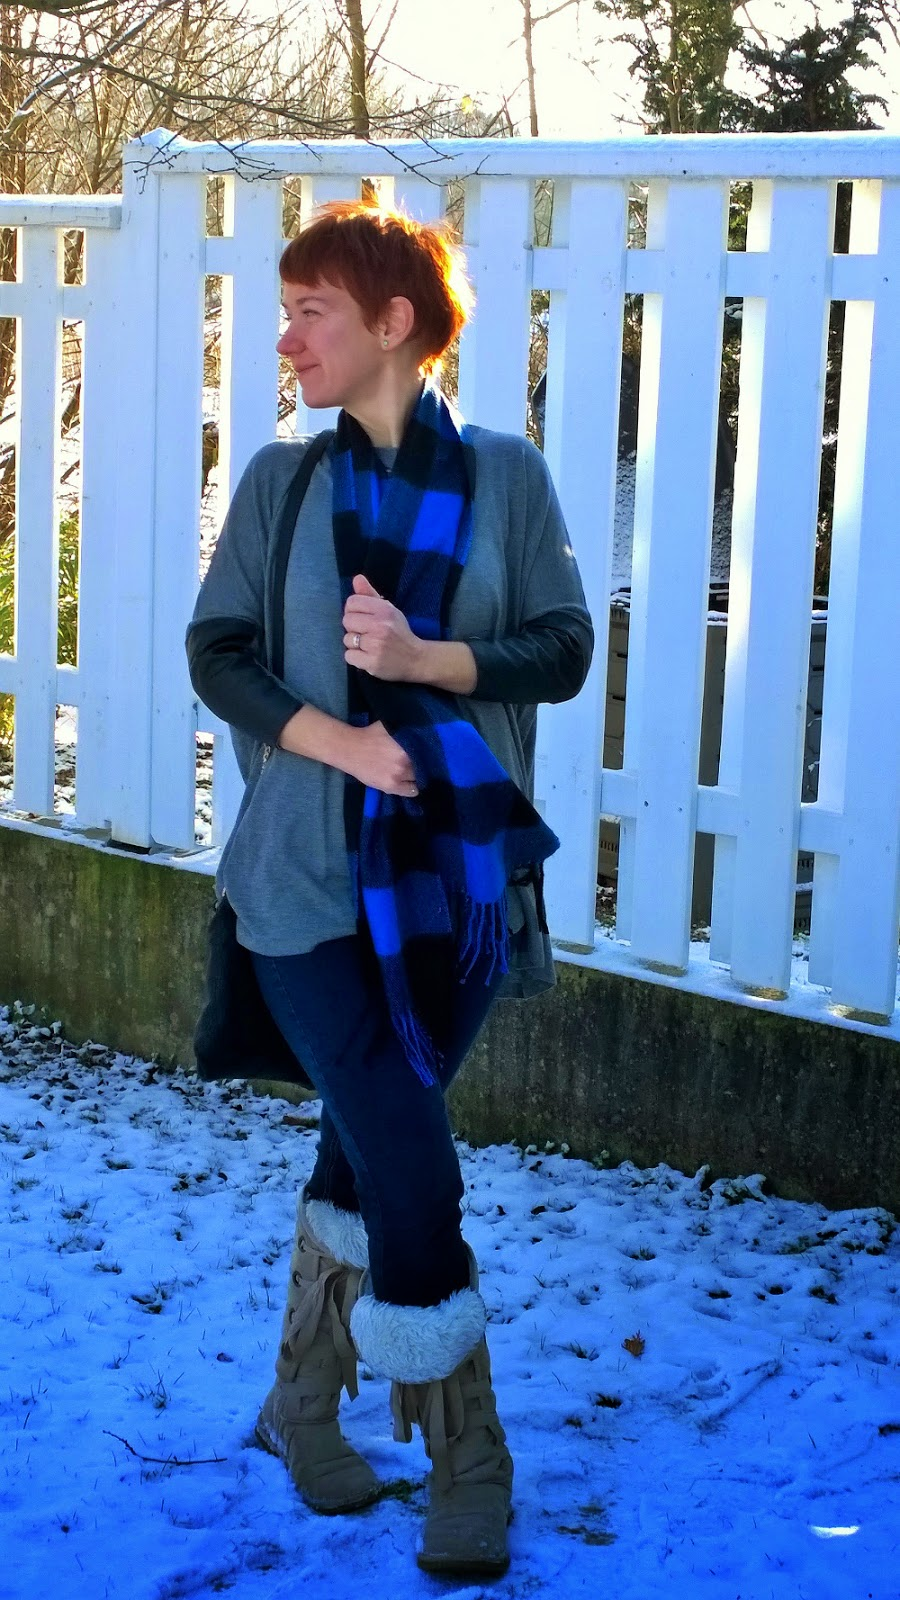 Buffalo plaid scarf, fake fur boots, skinnie jeans, batwing sleeves, fashion and style blog